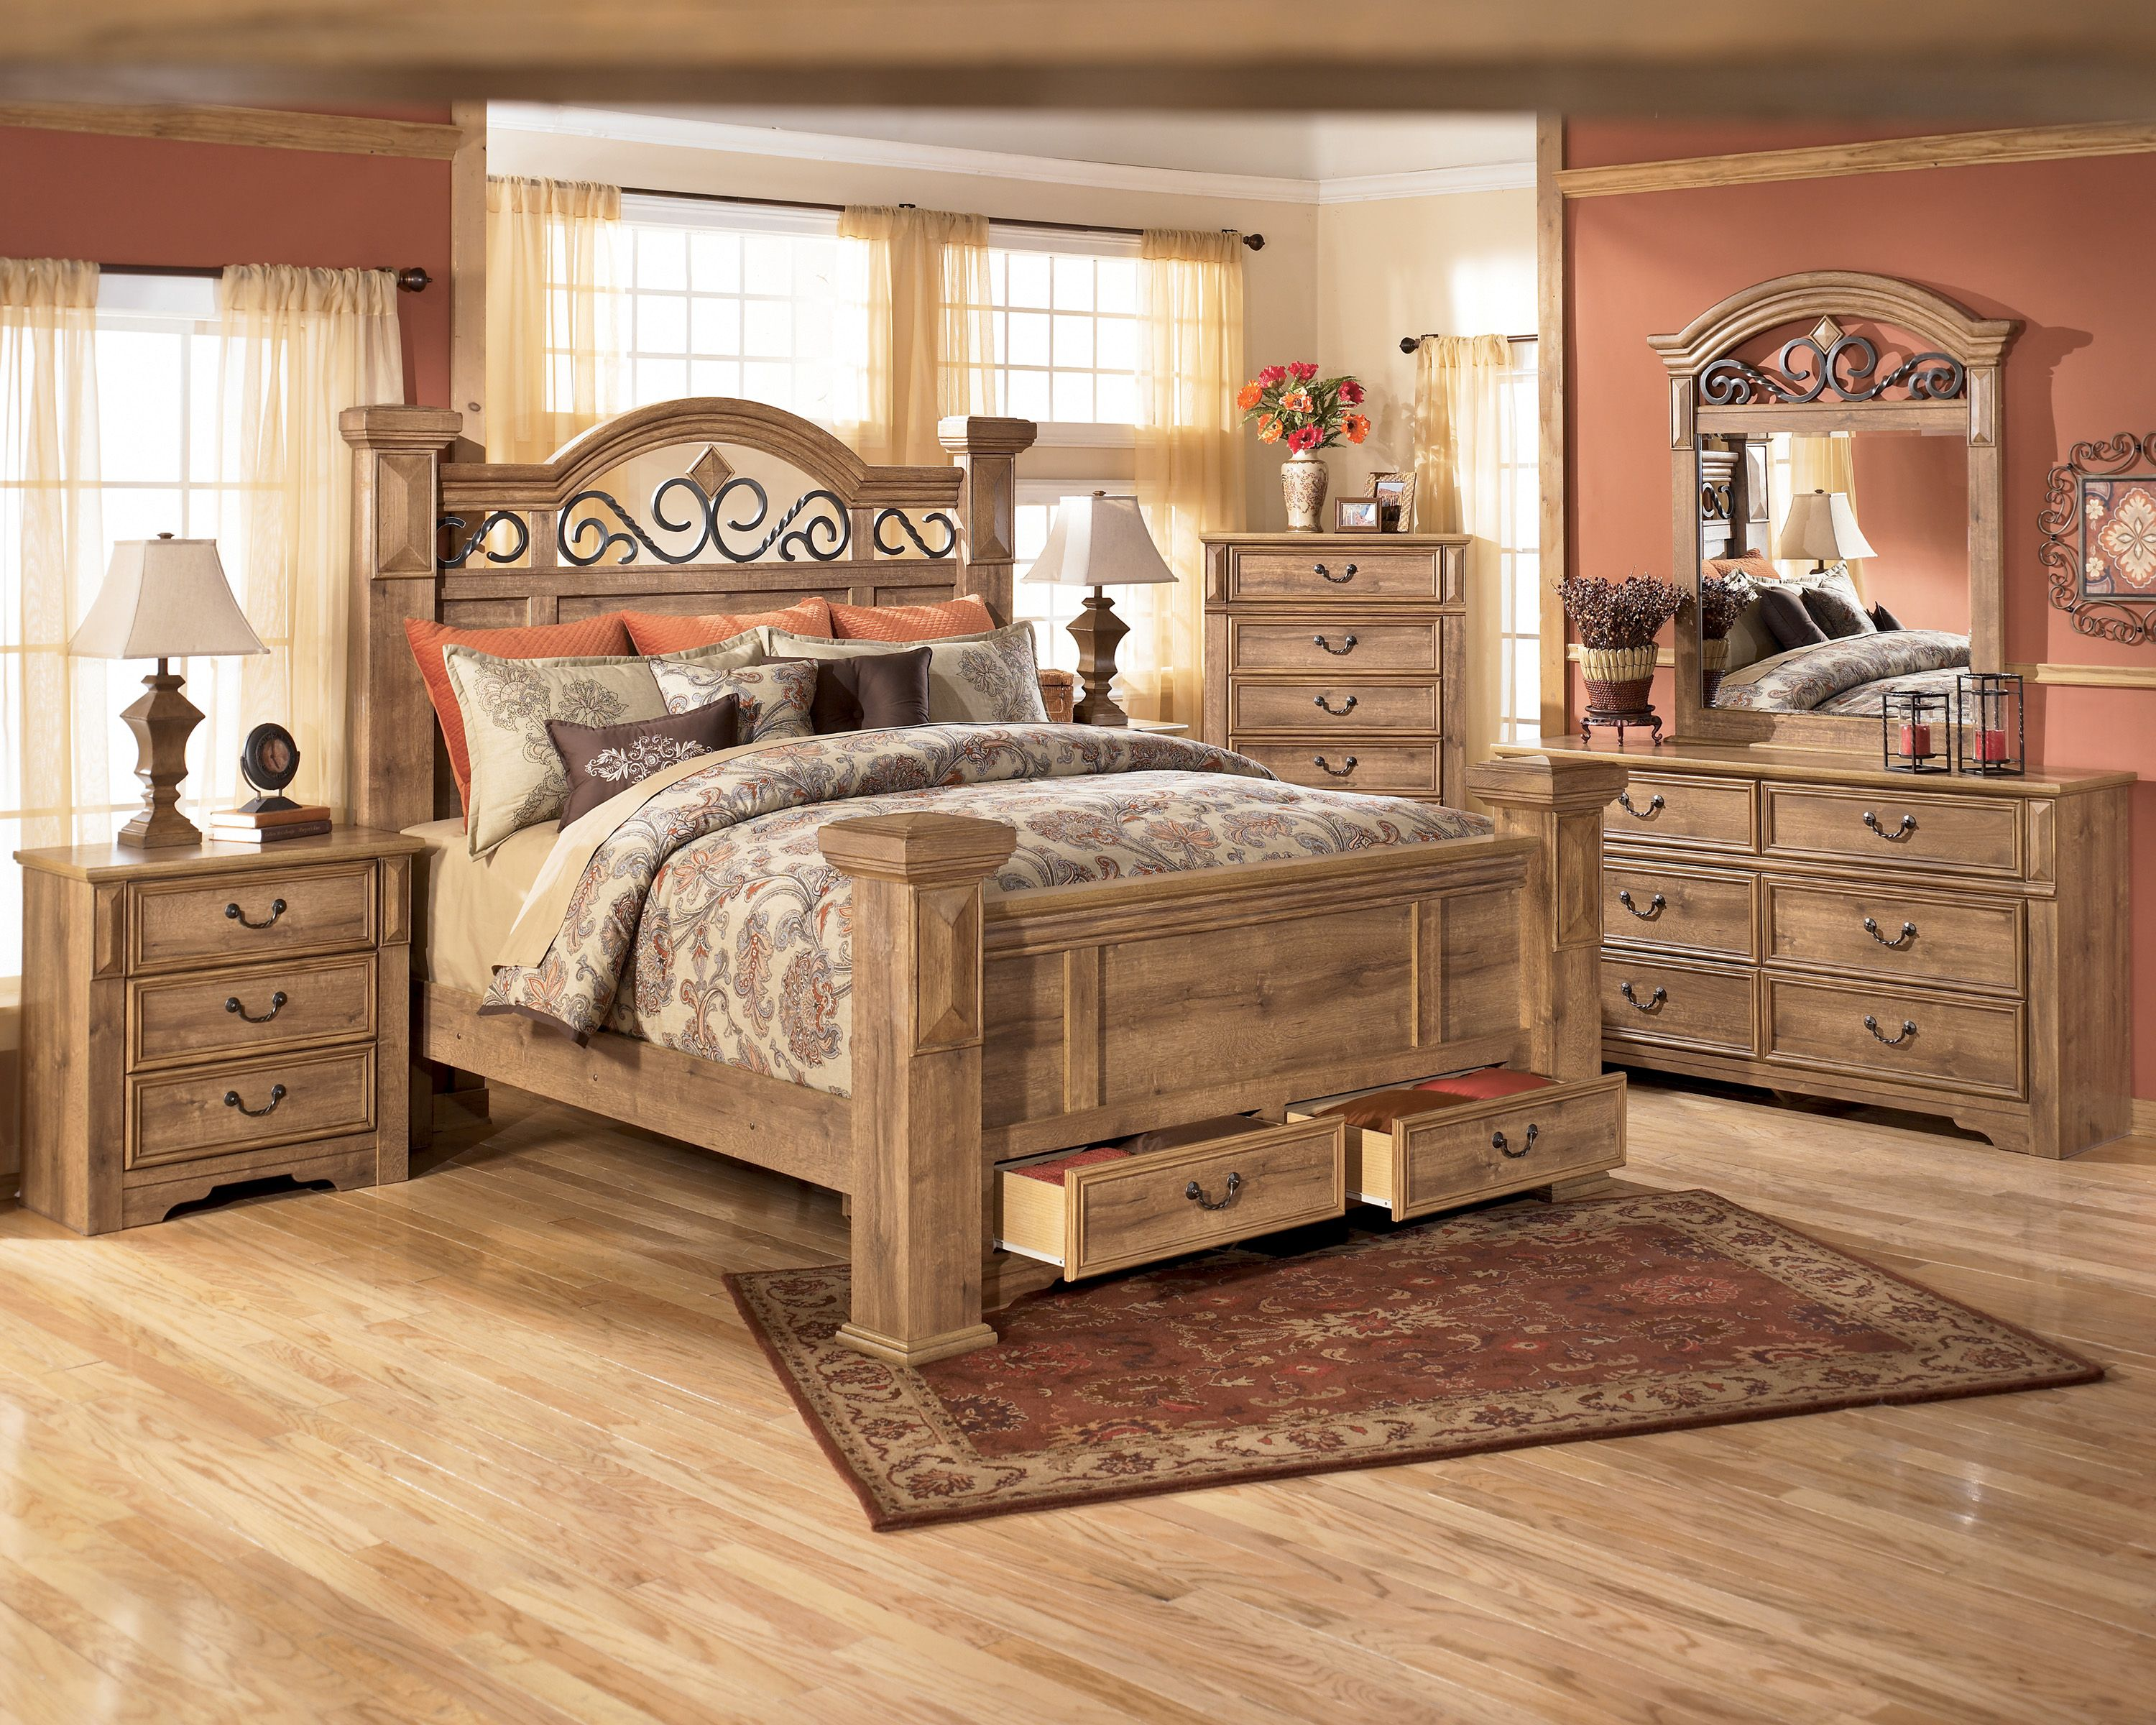 25 best King size bedroom sets ideas on Pinterest